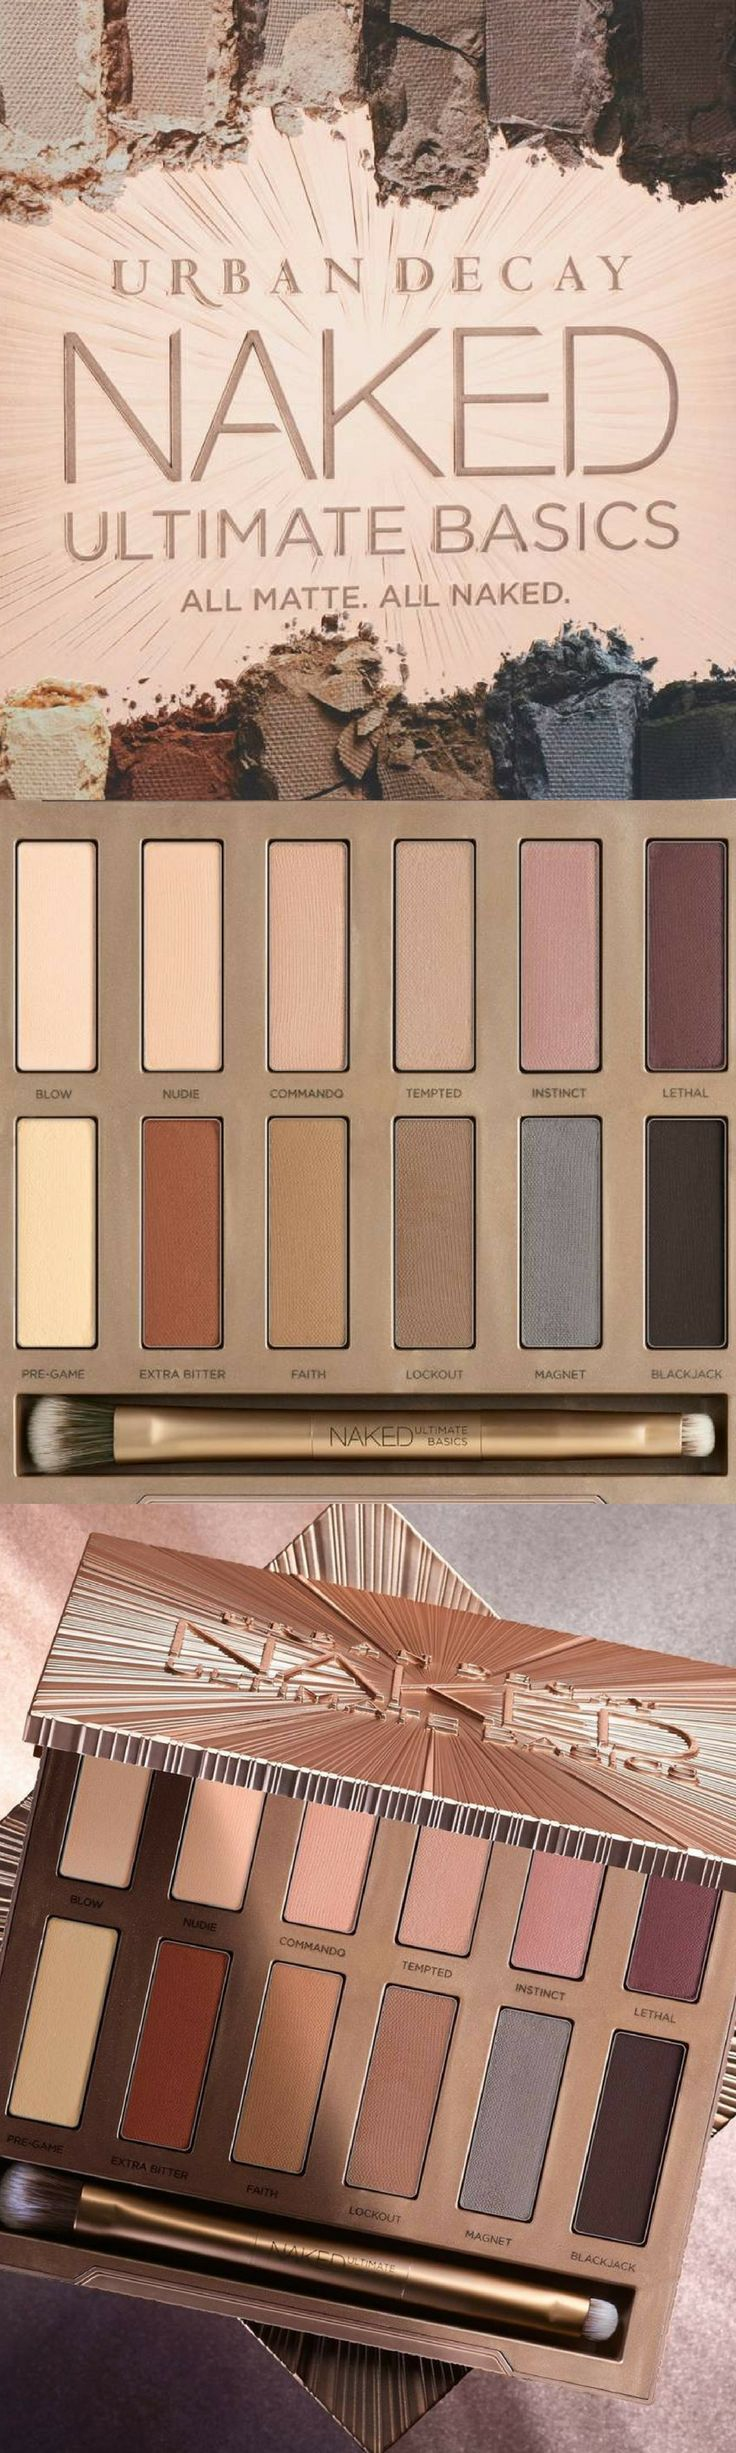 Urban Decay Naked Ultimate Basics Palette at NORDSTROM. Urban Decay introduces Naked Ultimate Basics-the matte eyeshadow palette you've been begging for. NNT #affiliate #makeup #eyeshadow #giftidea #eyeshadowpalette #gift #GiftForHer #GIFTIDEA #christmasgifts #christmasgiftsideas #urbandecay Urban Decay Naked2 Palette | Urban Decay Naked2 | Urban Decay Naked3 Palette Looks | ultimate basics palette looks |  ultimate basics palette |